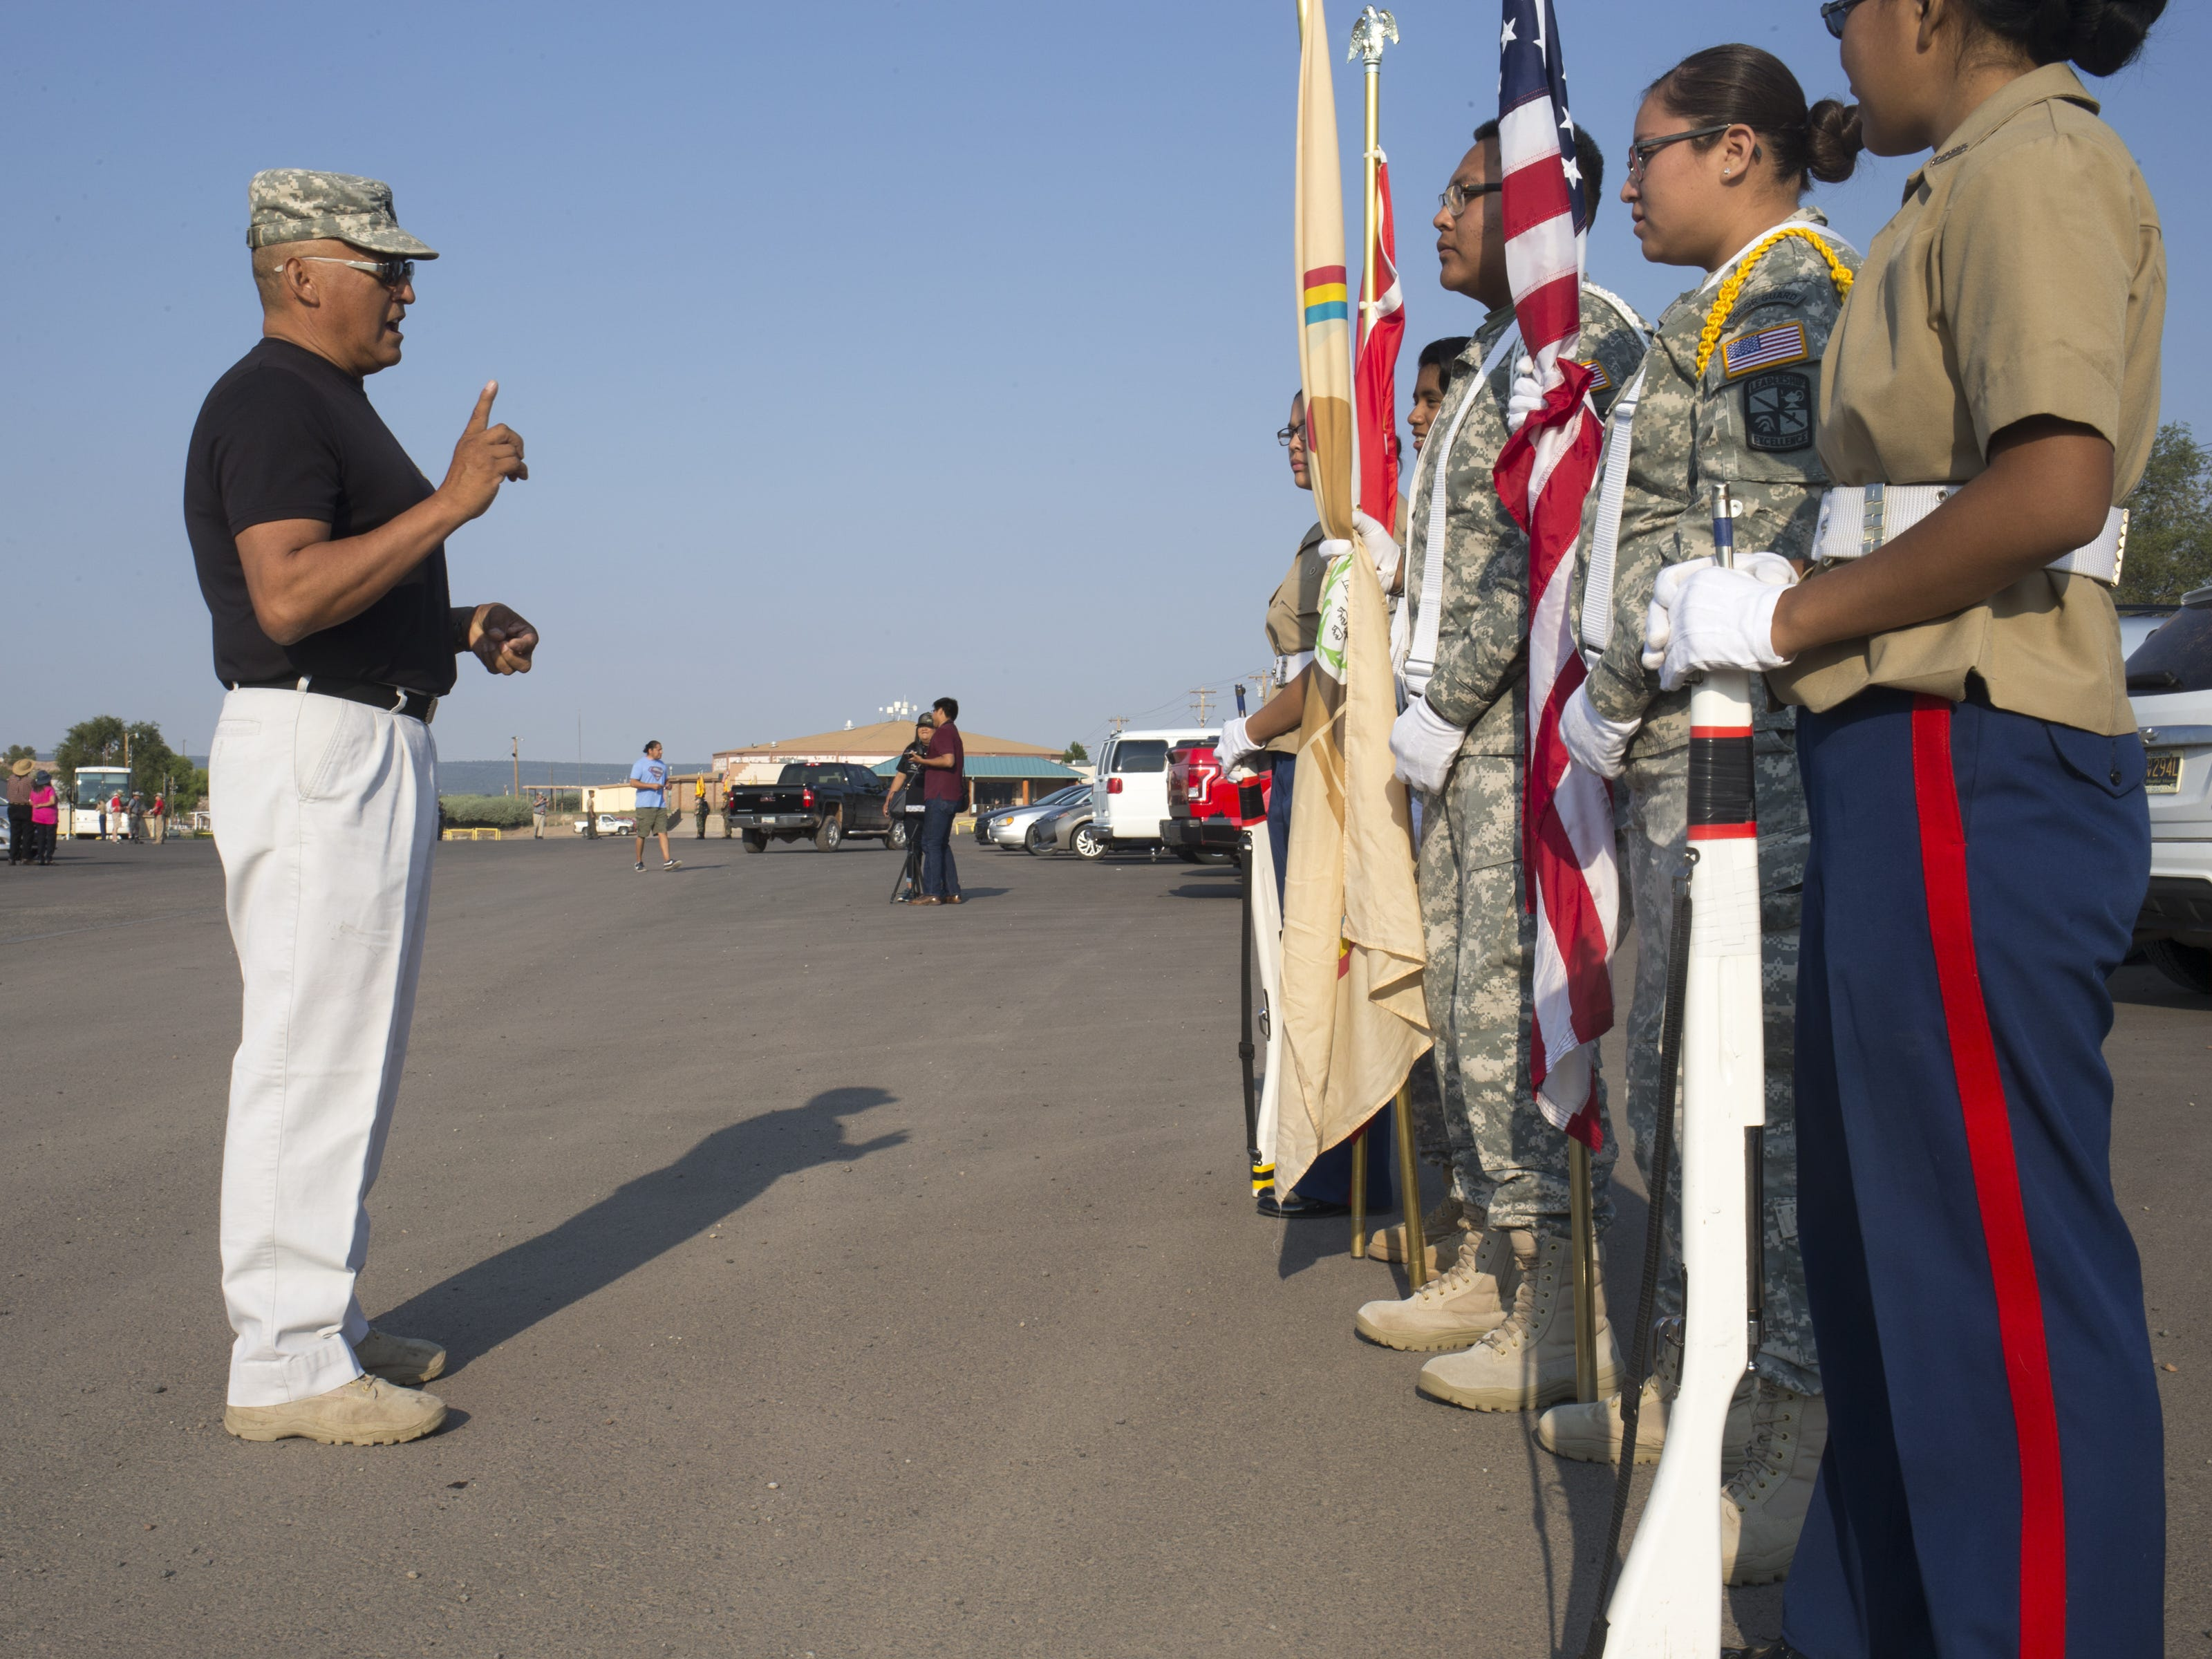 David McLaughlin instructs the Tohatchi ROTC unit, August 13, 2018, before the start of the Navajo Nation Code Talkers Day parade on Aug. 14, 2018, at the Navajo Nation Fairgrounds in Window Rock.